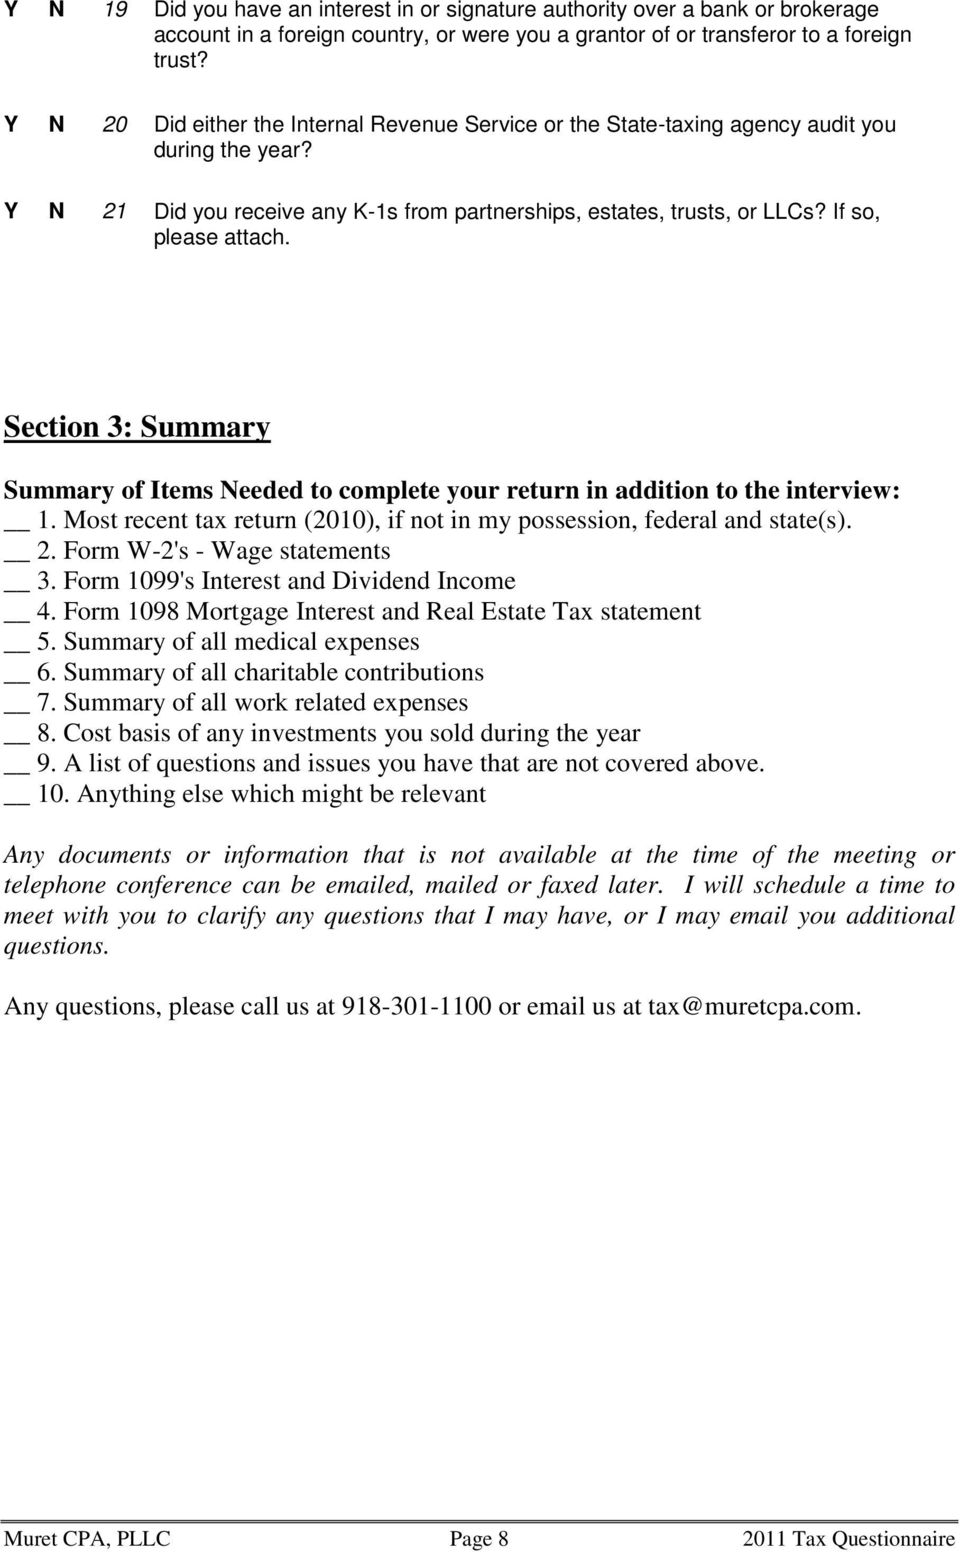 Section 3: Summary Summary of Items Needed to complete your return in addition to the interview: 1. Most recent tax return (2010), if not in my possession, federal and state(s). 2.